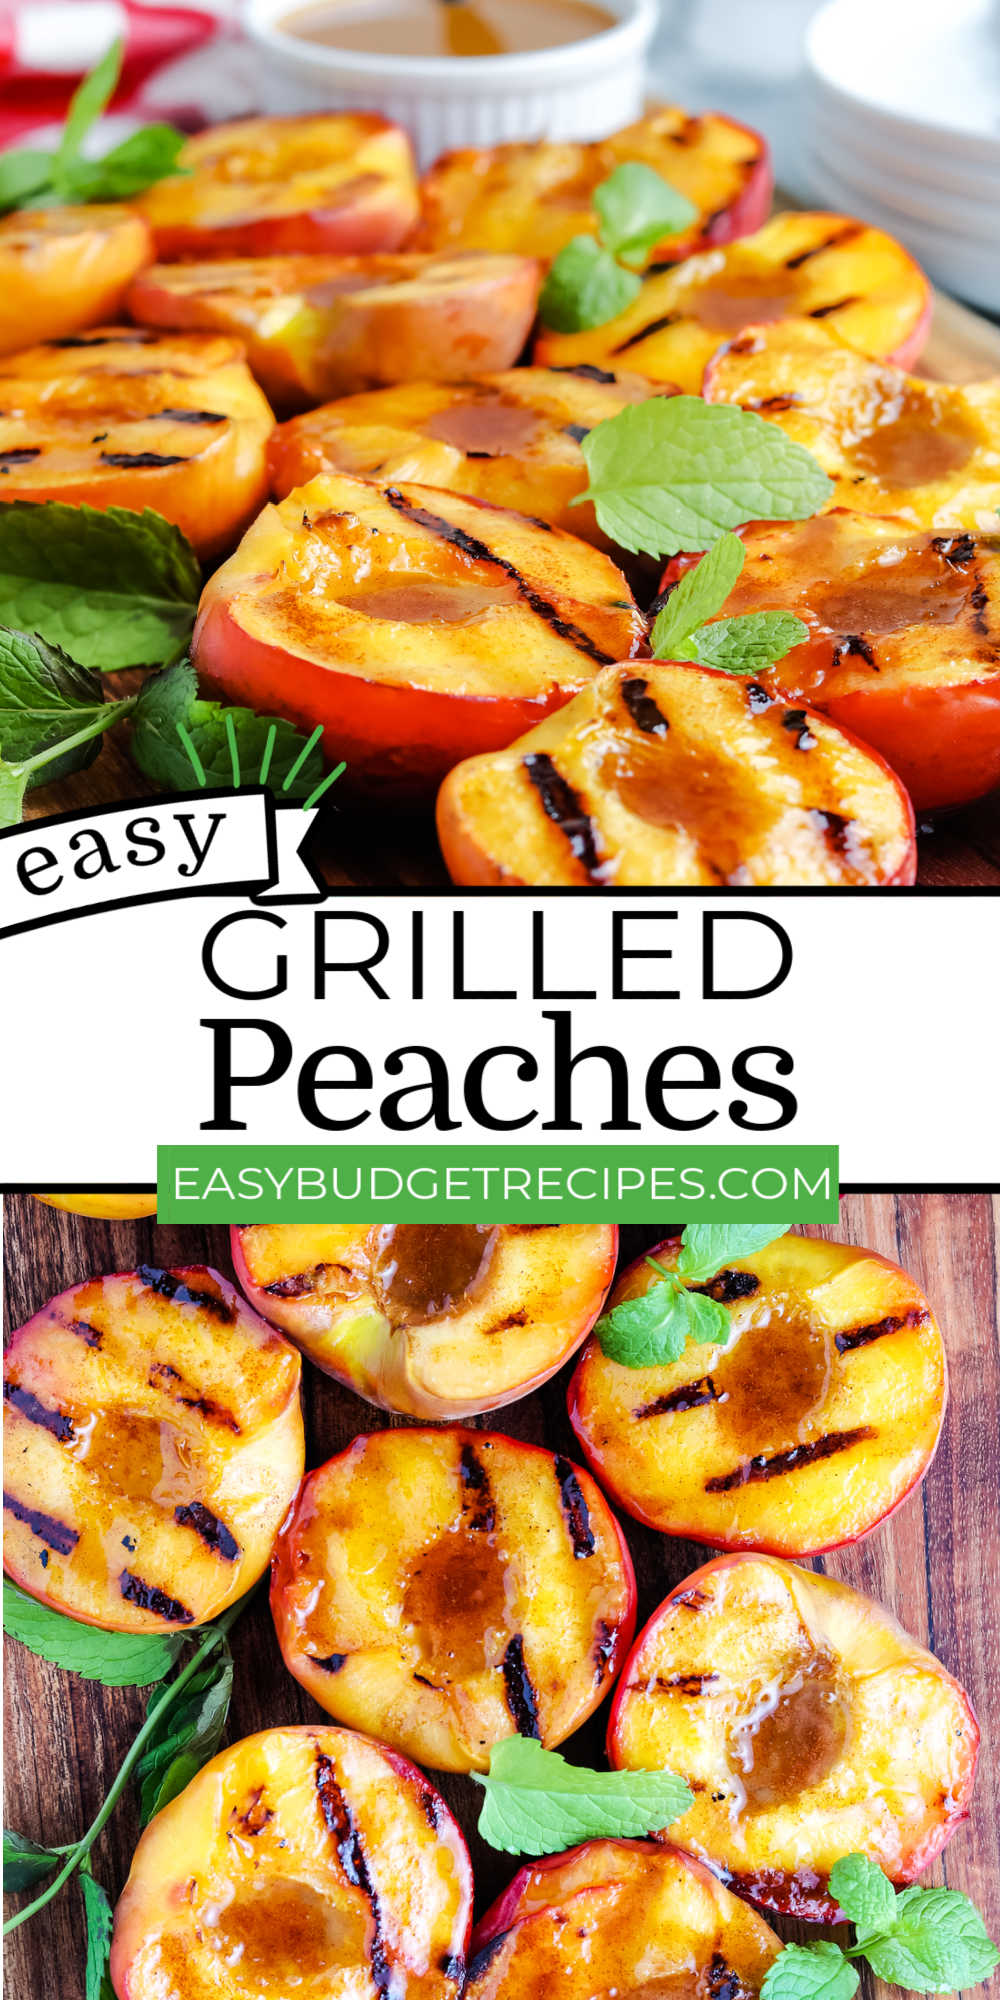 These Grilled Peaches are easy to make and delicious on their own or served with a scoop of vanilla ice cream and caramel sauce. via @easybudgetrecipes